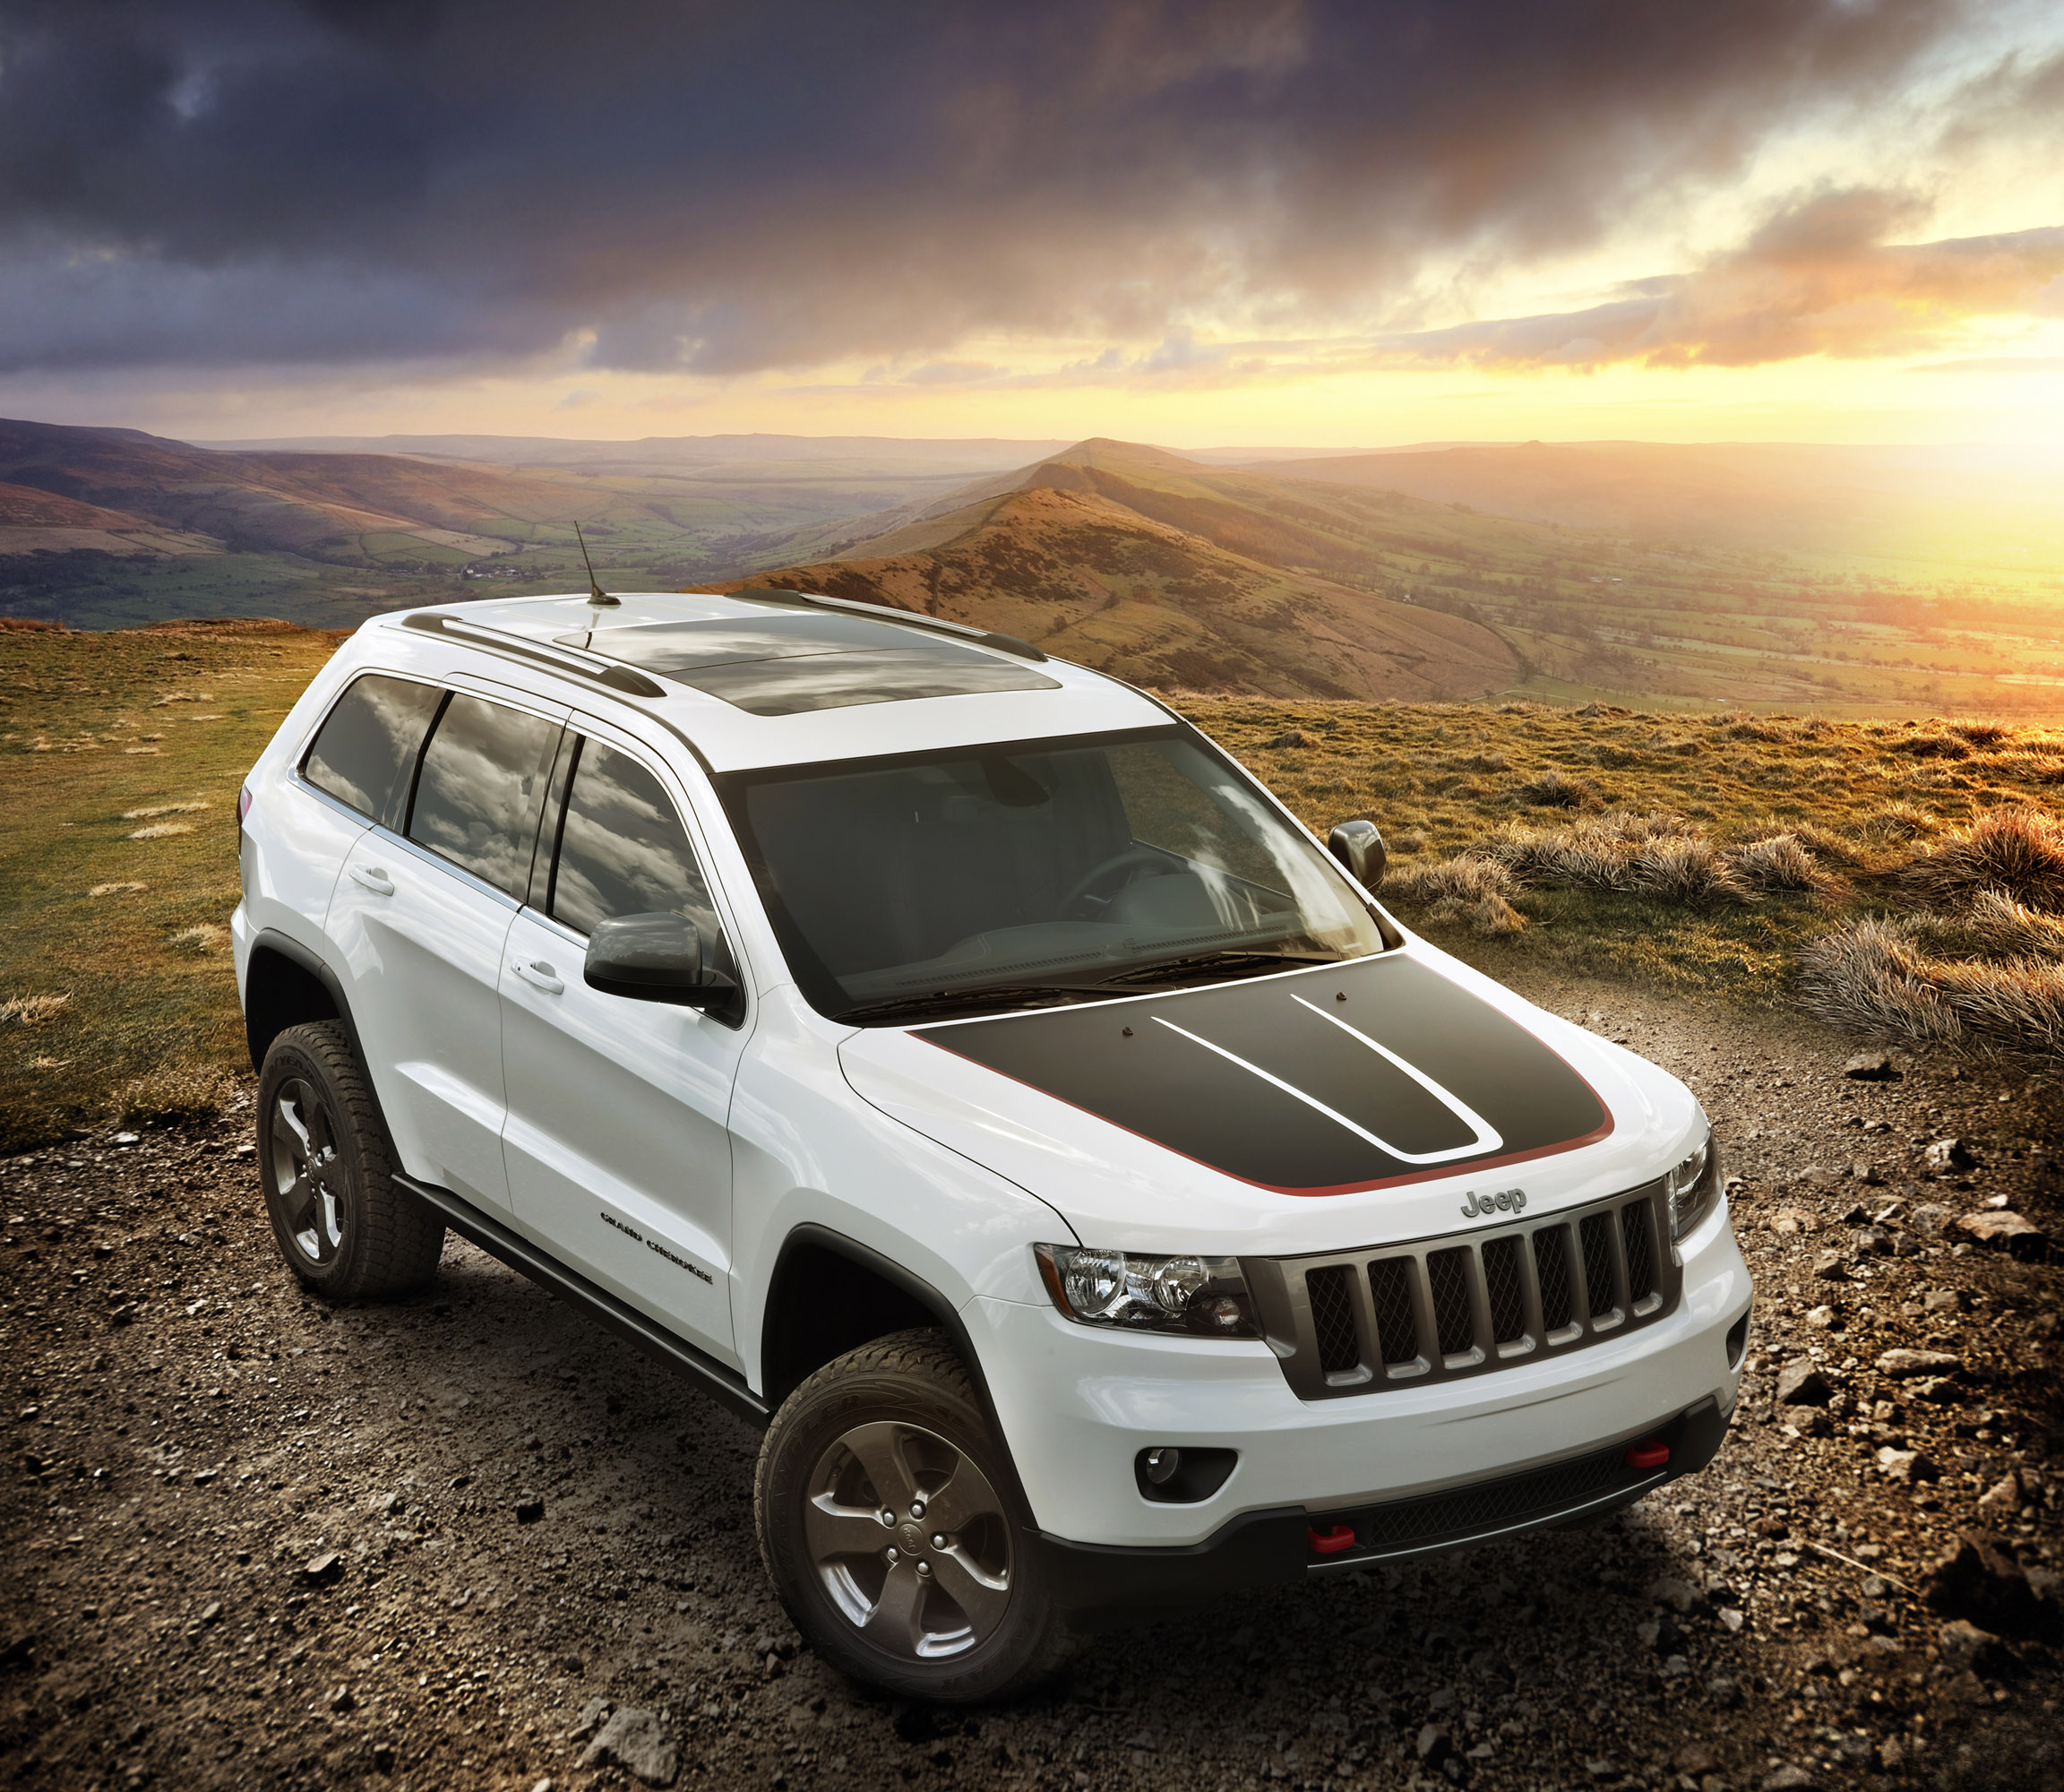 2013 jeep grand cherokee trailhawk and 2013 jeep wrangler moab. Black Bedroom Furniture Sets. Home Design Ideas